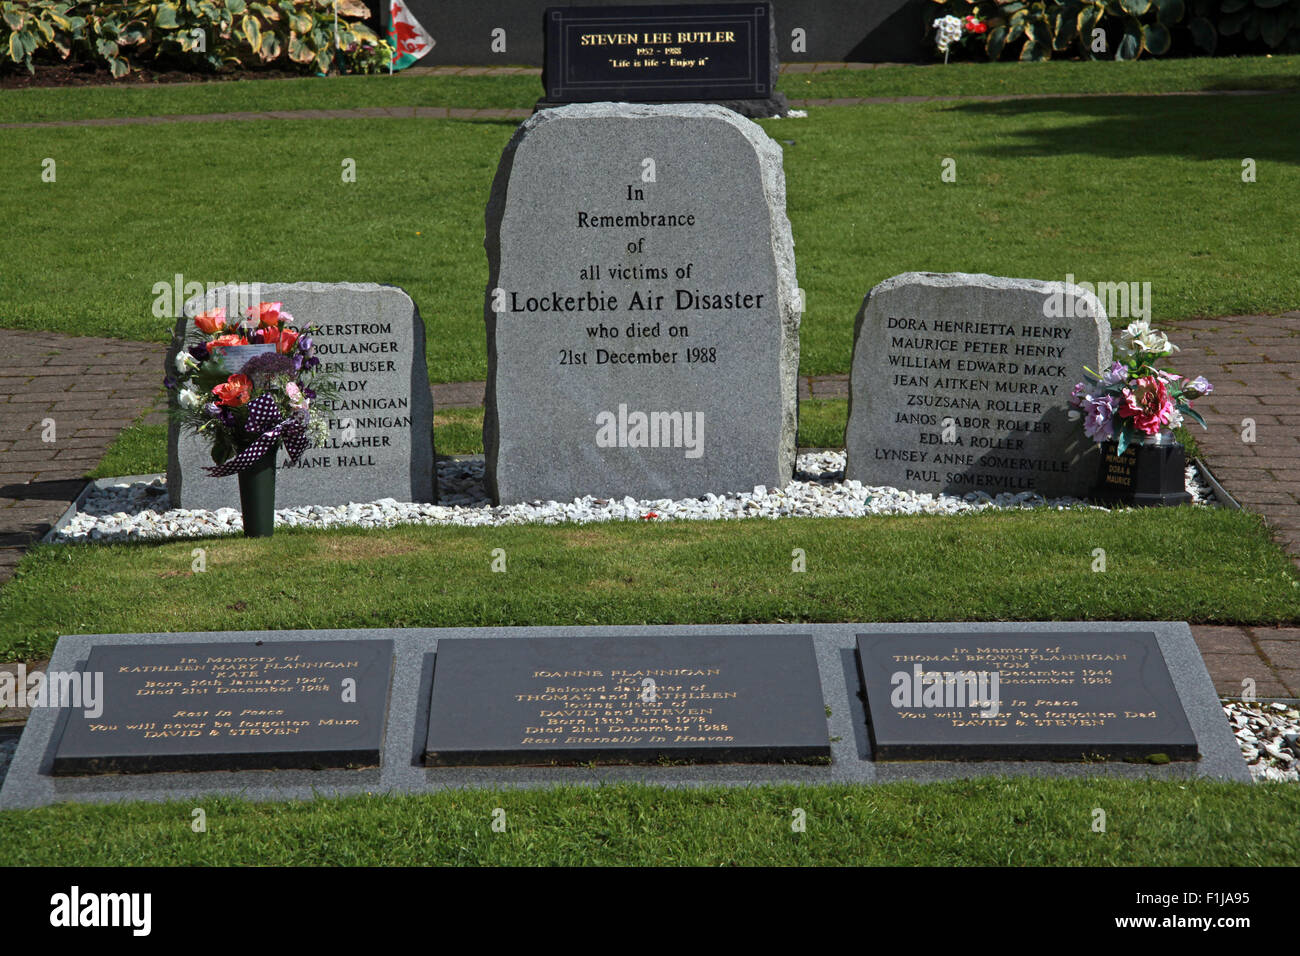 Lockerbie PanAm103 In Rememberance Memorial Stones Entrance,Scotland - Stock Image